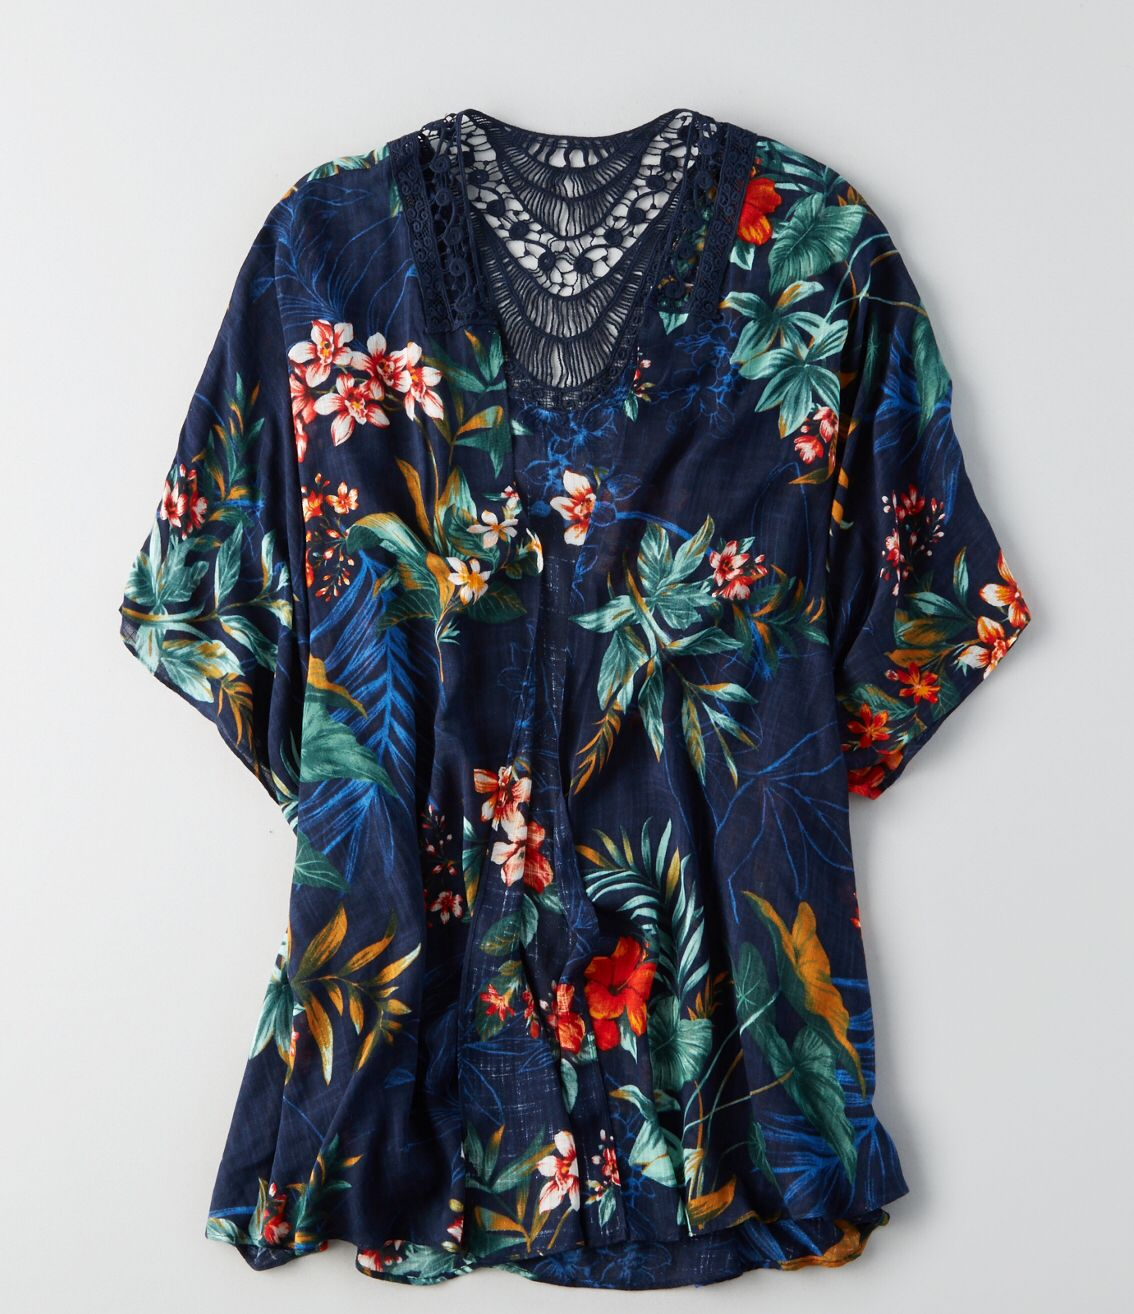 I'm sharing the love with you! Check out the cool stuff I just found at AEO: https://www.ae.com/web/browse/product.jsp?productId=1421_8326_410